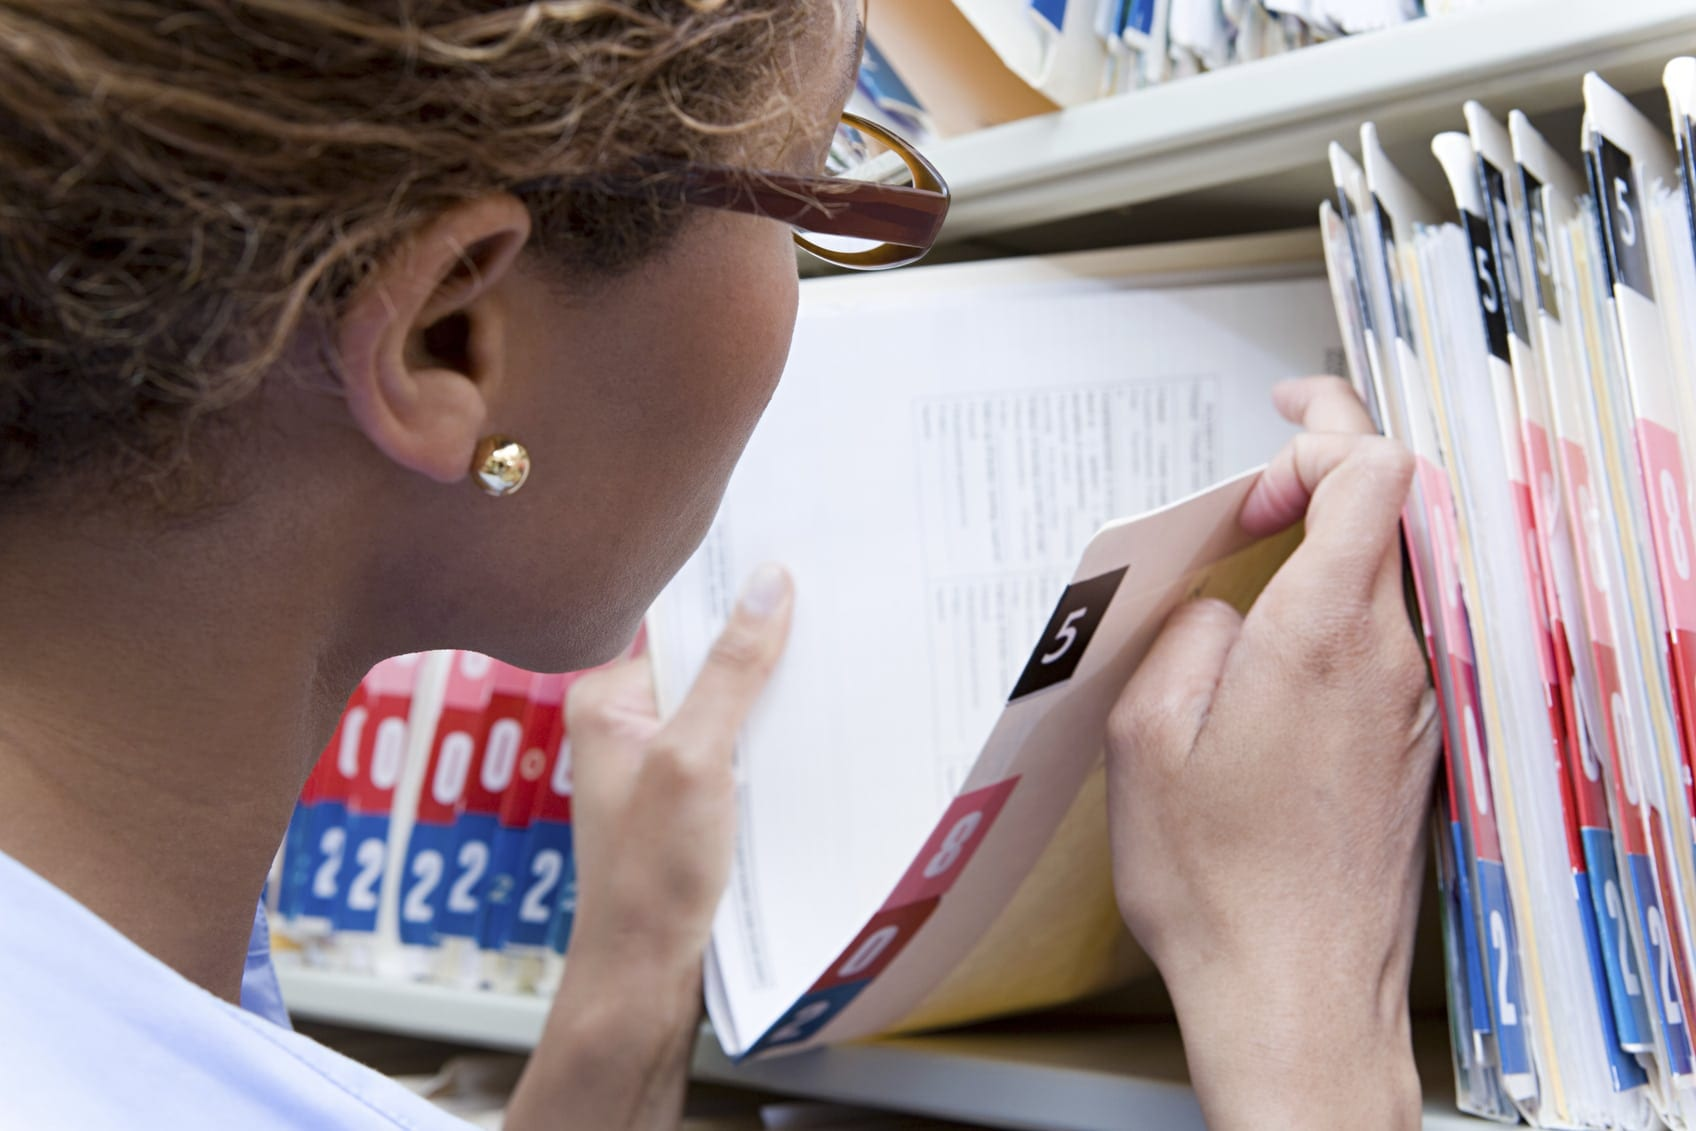 Nurse Examining Medical Records On Shelf Stock Photo